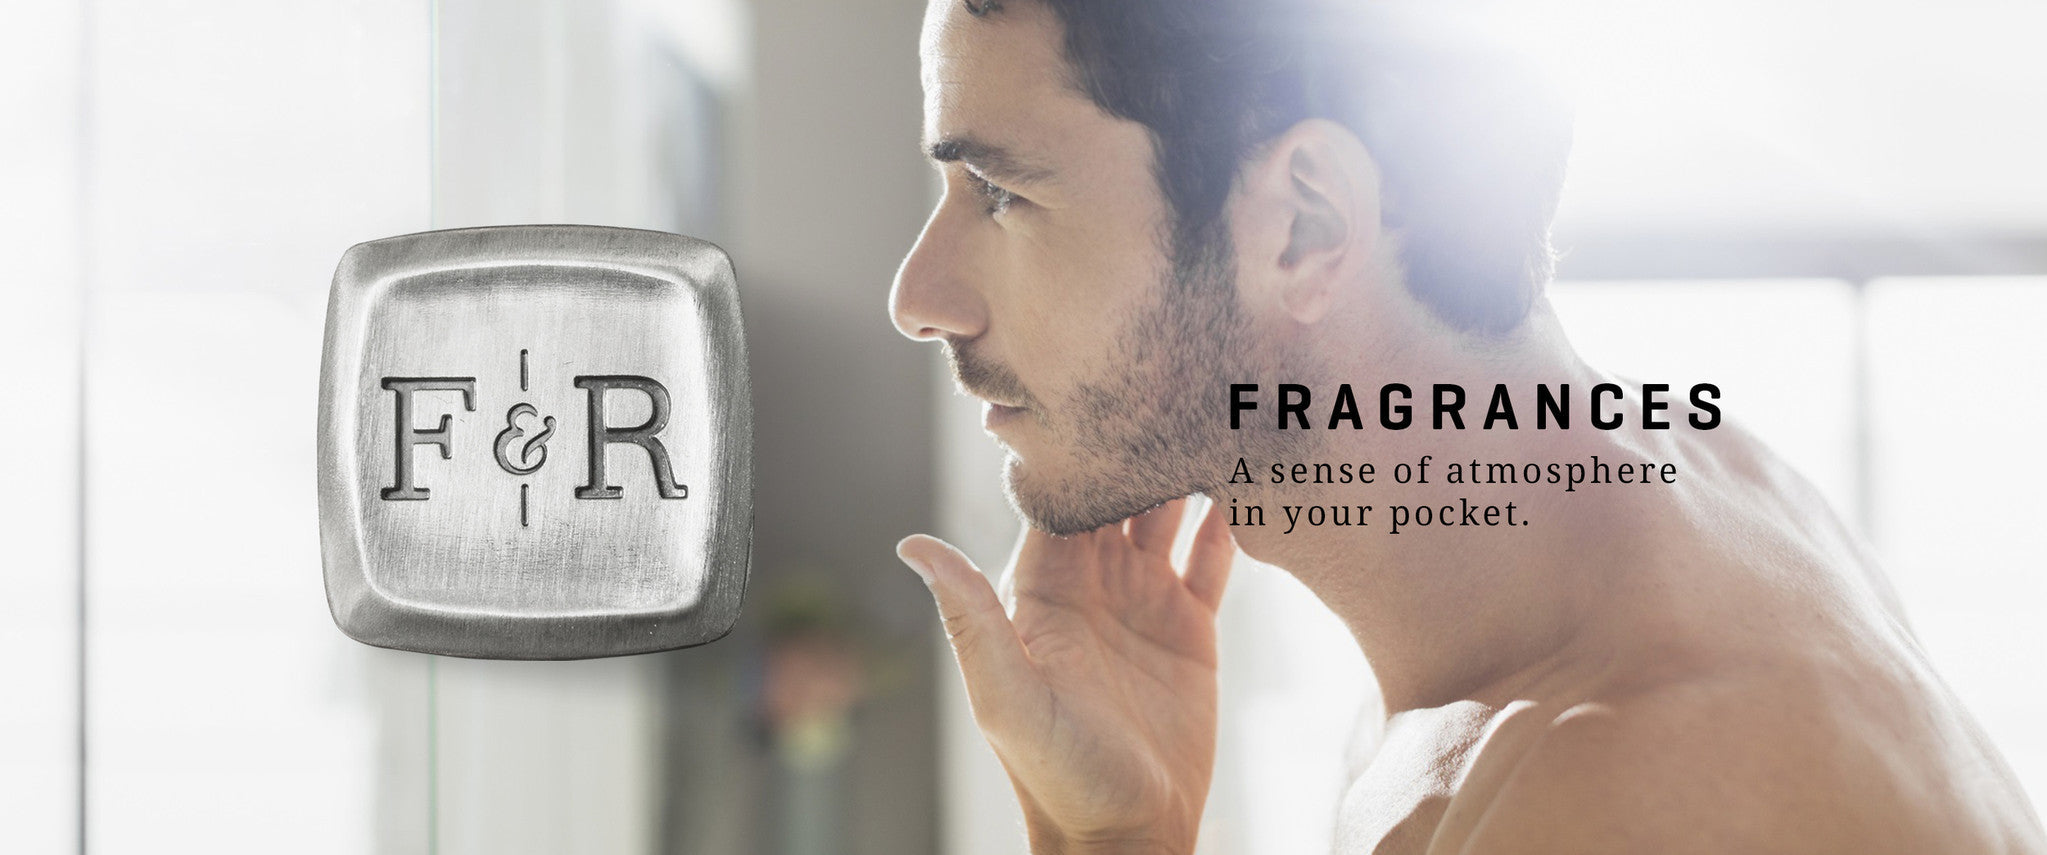 Fragrances - A Sense of Atmosphere in your pocket.